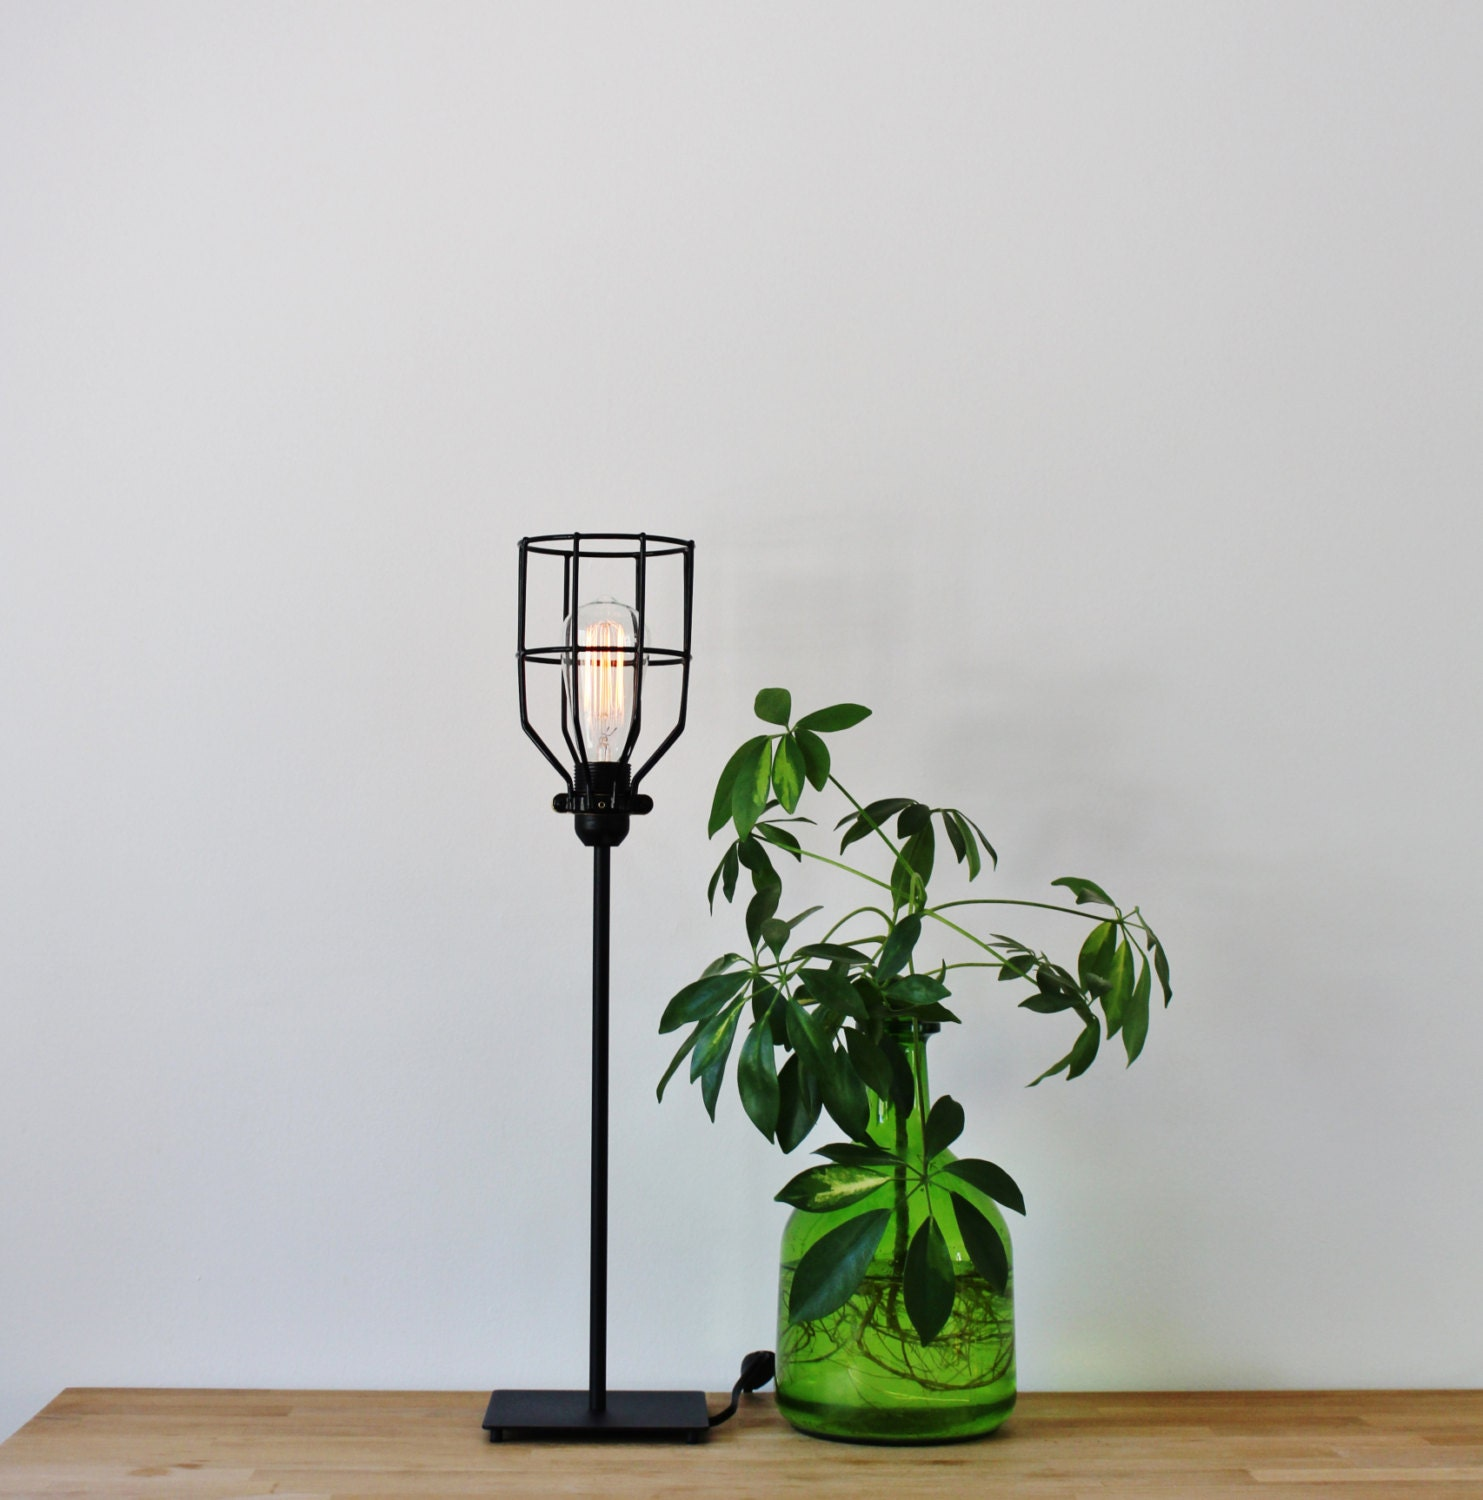 Table lamp vintage style - Basic Black Wire Cage Table Lamp Vintage Style Rustic Minimalist Desk Light Industrial Bootsngus Modern Home Office Lighting And Decor